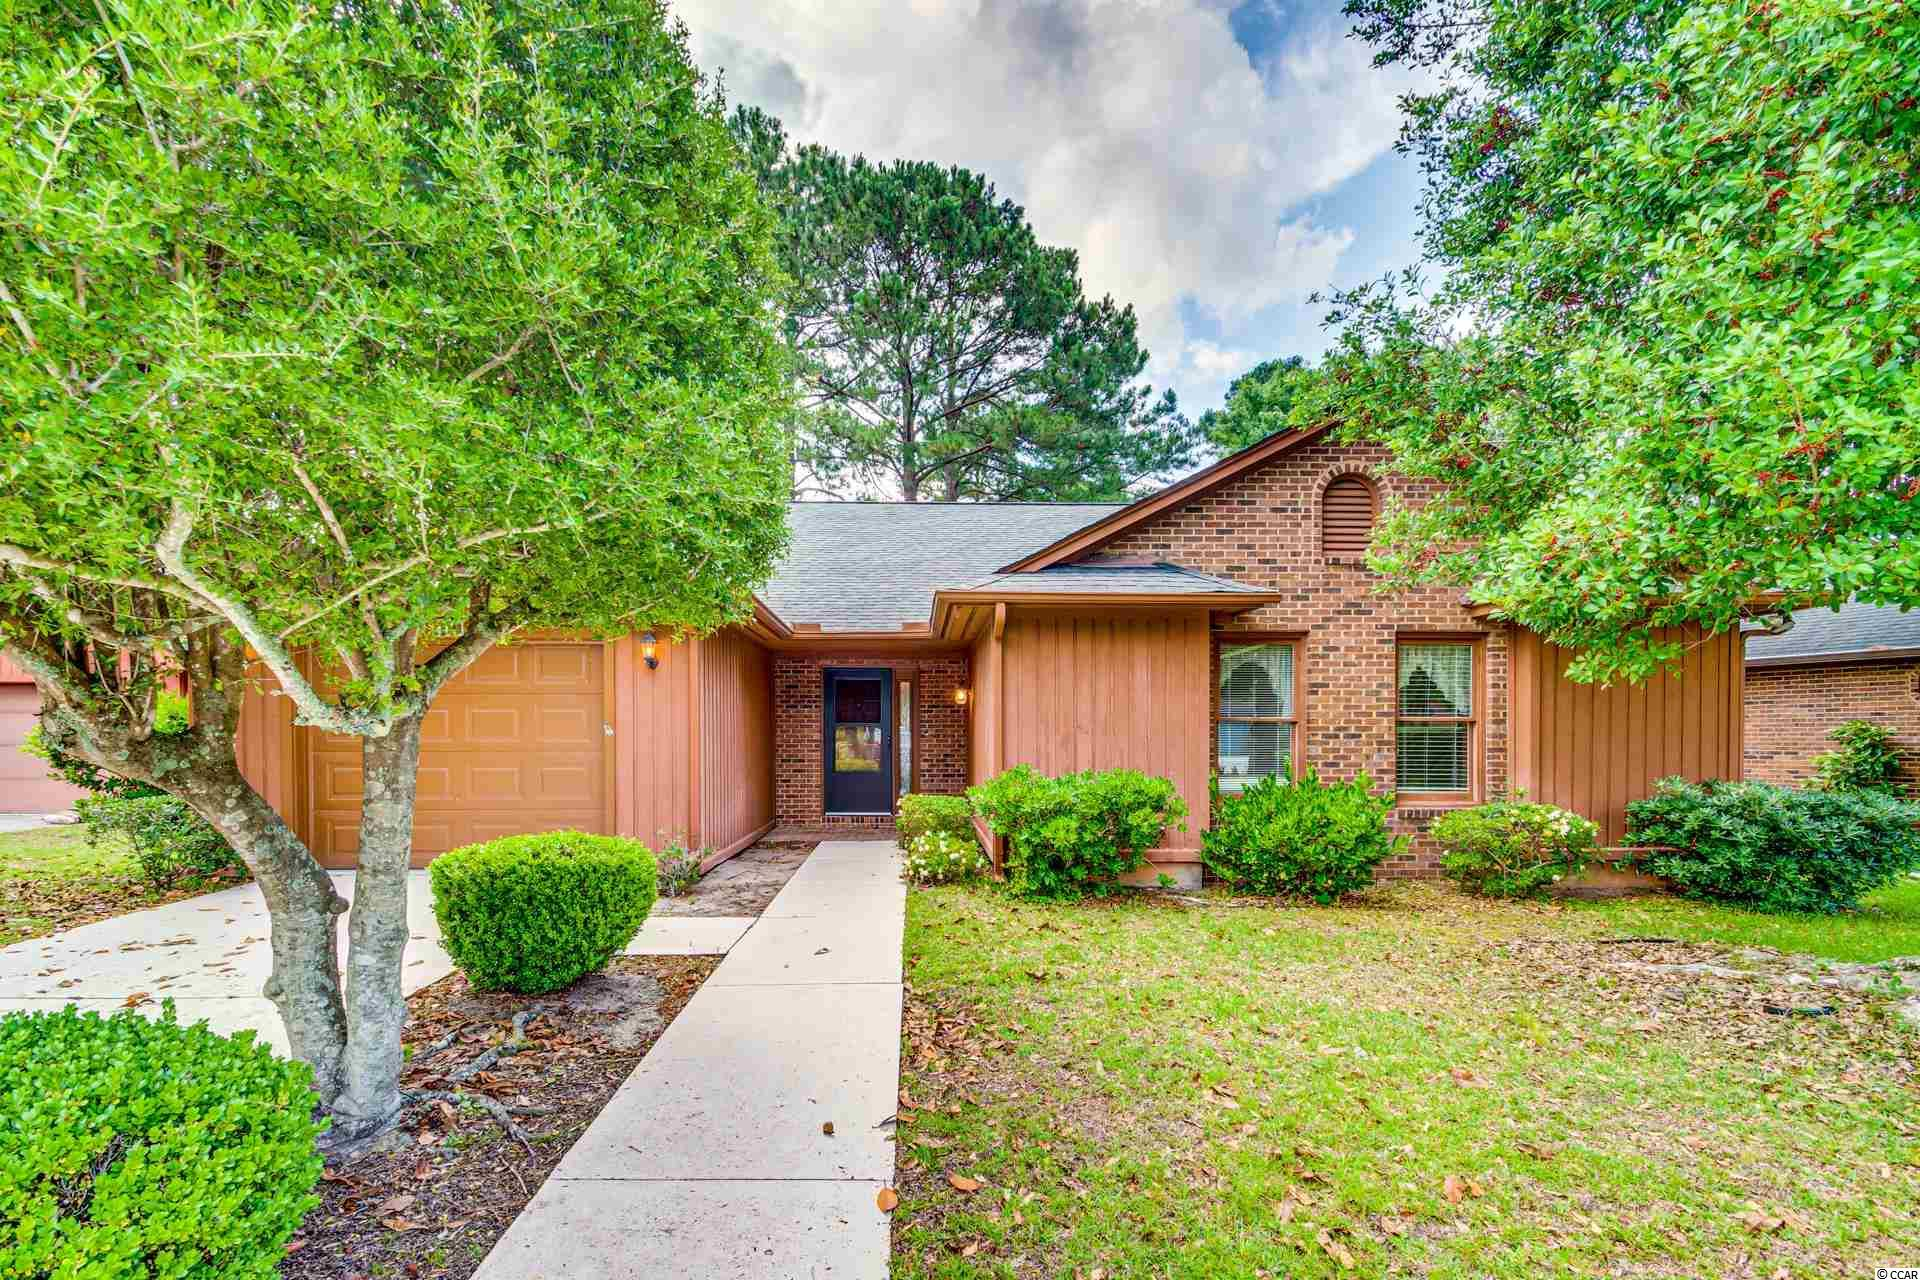 """3 BR/2 BA home in active 55+ Myrtle Trace community.  The property is located on a community """"lake"""" as well as on a cul-de-sac.  The property is being sold """"As Is"""" and is in need of exterior wood repairs or replacement.  Nice open floor plan with cathedral style ceiling in living room and dining room.  """" Split """"  Bedroom floor plan . Normal cosmetic  Interior upgrades needed  .There are covenants with restrictions.  Community offers Clubhouse and outdoor pool.  Close to shopping, services, fine dining, golf, hospital and more!"""